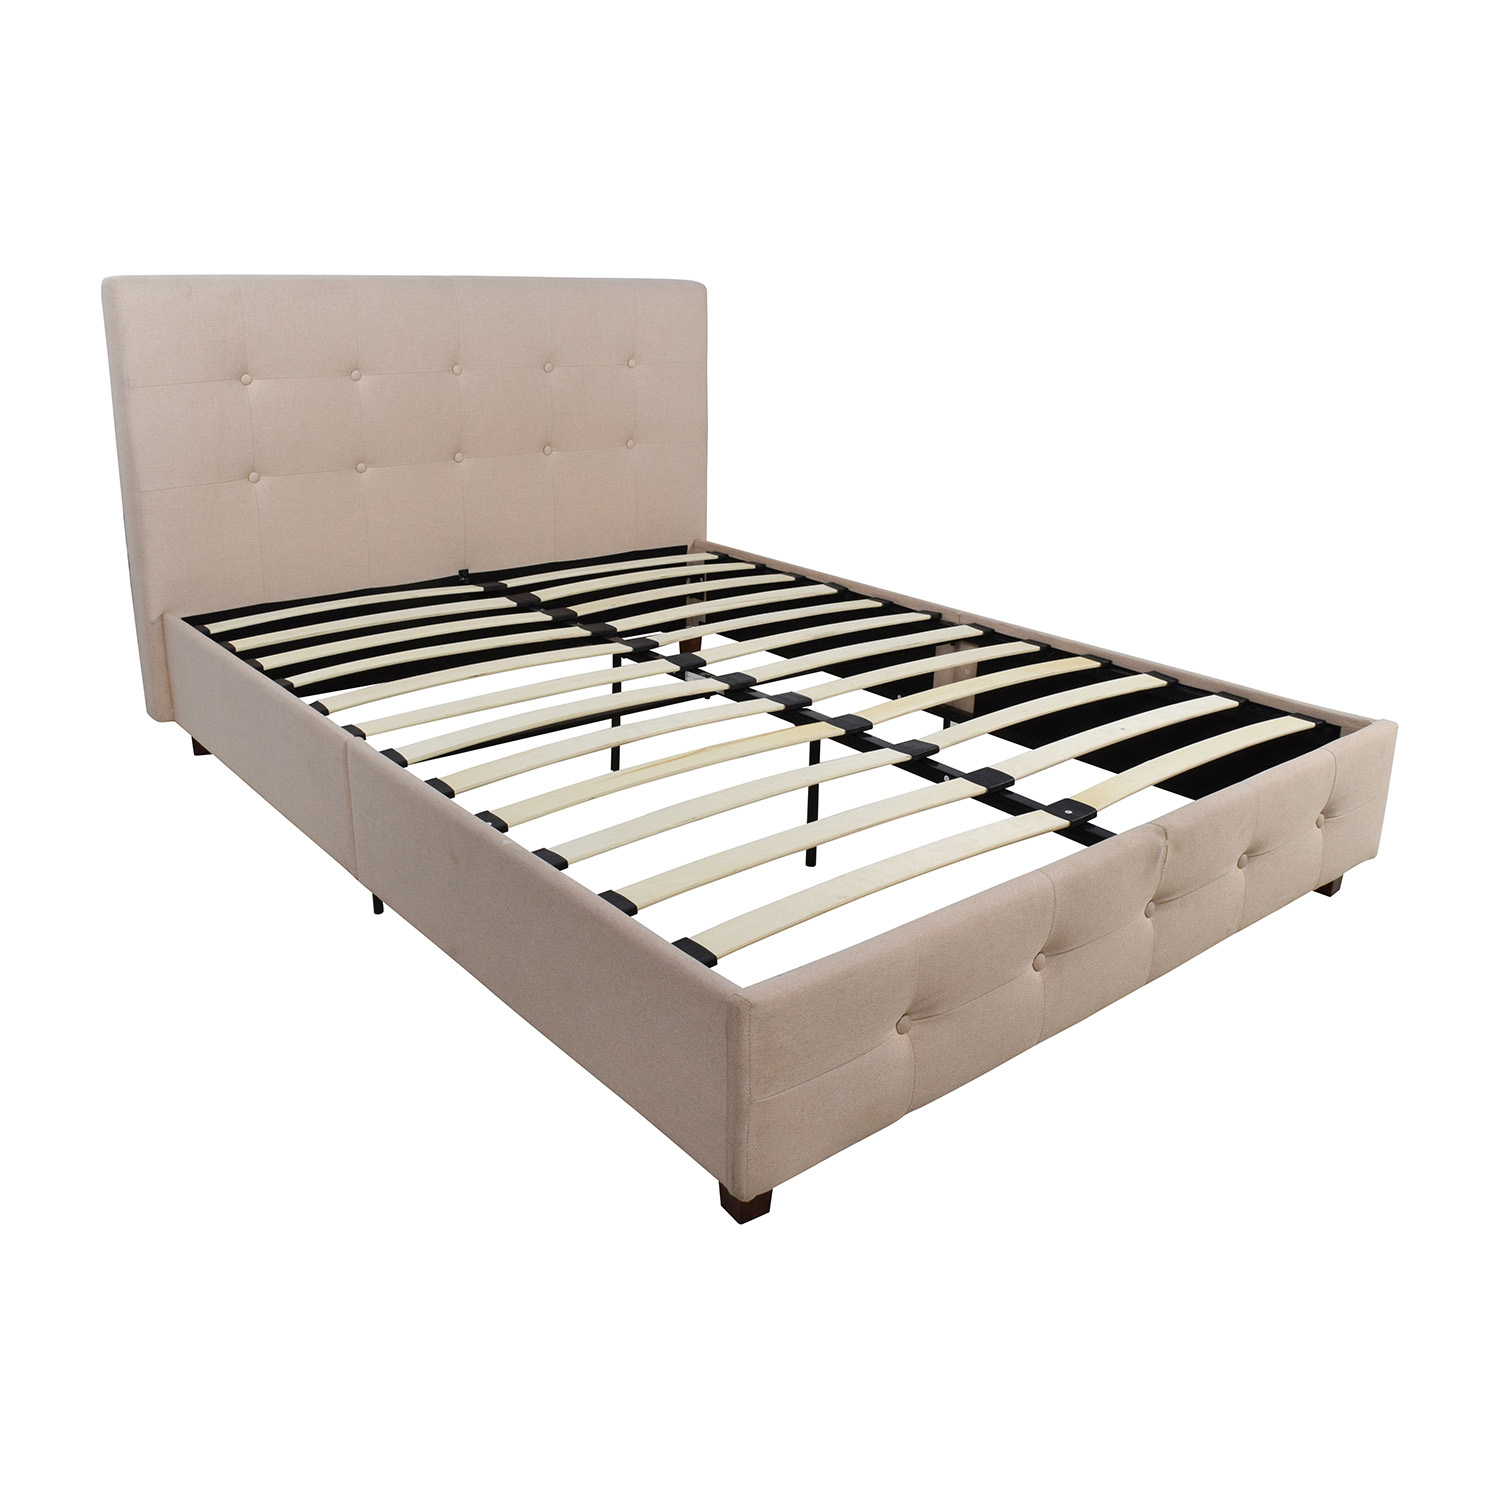 62 off wayfair wayfair tufted tan fabric full bed frame beds. Black Bedroom Furniture Sets. Home Design Ideas